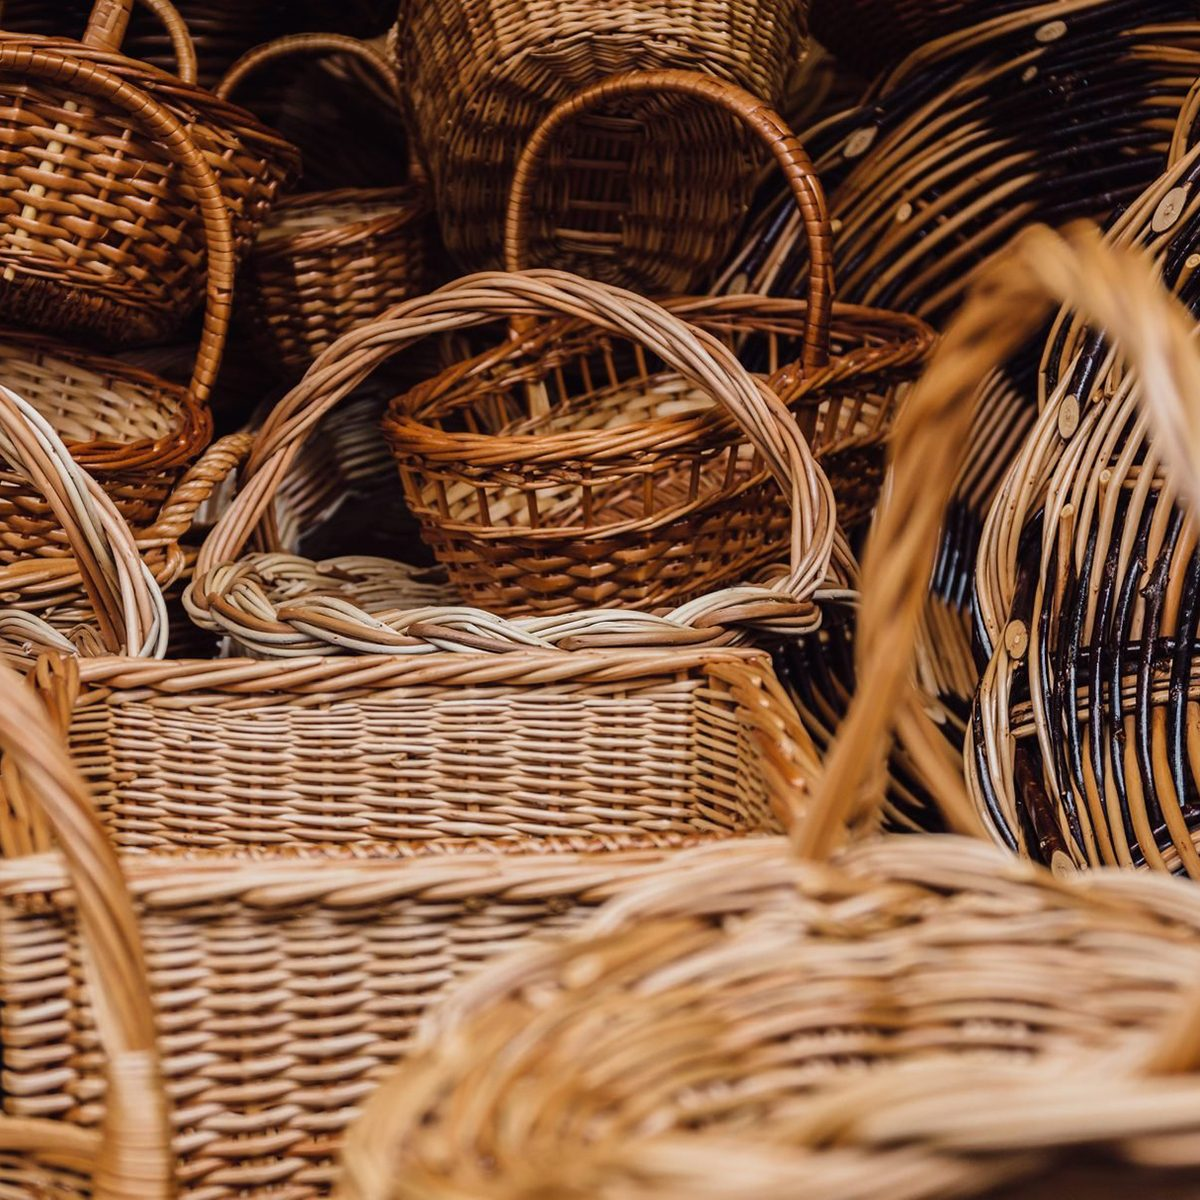 Close-Up Of Wicker Baskets For Sale